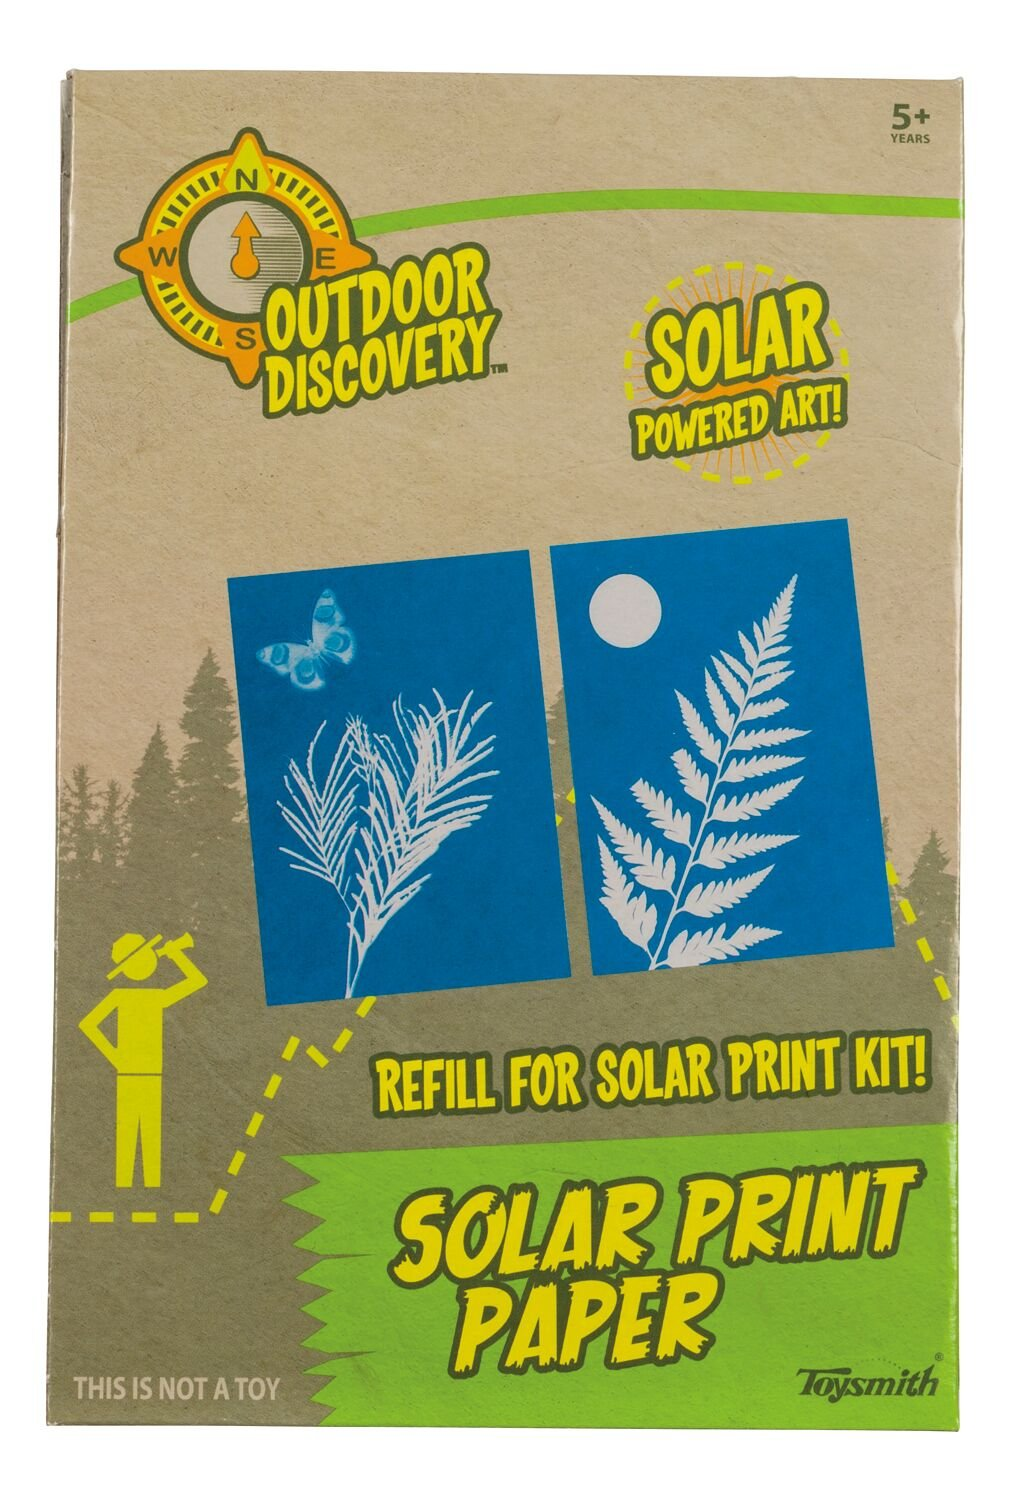 Toysmith 4064 Repack, Solar Print Paper Refill Pack, Toy, 1-Pack